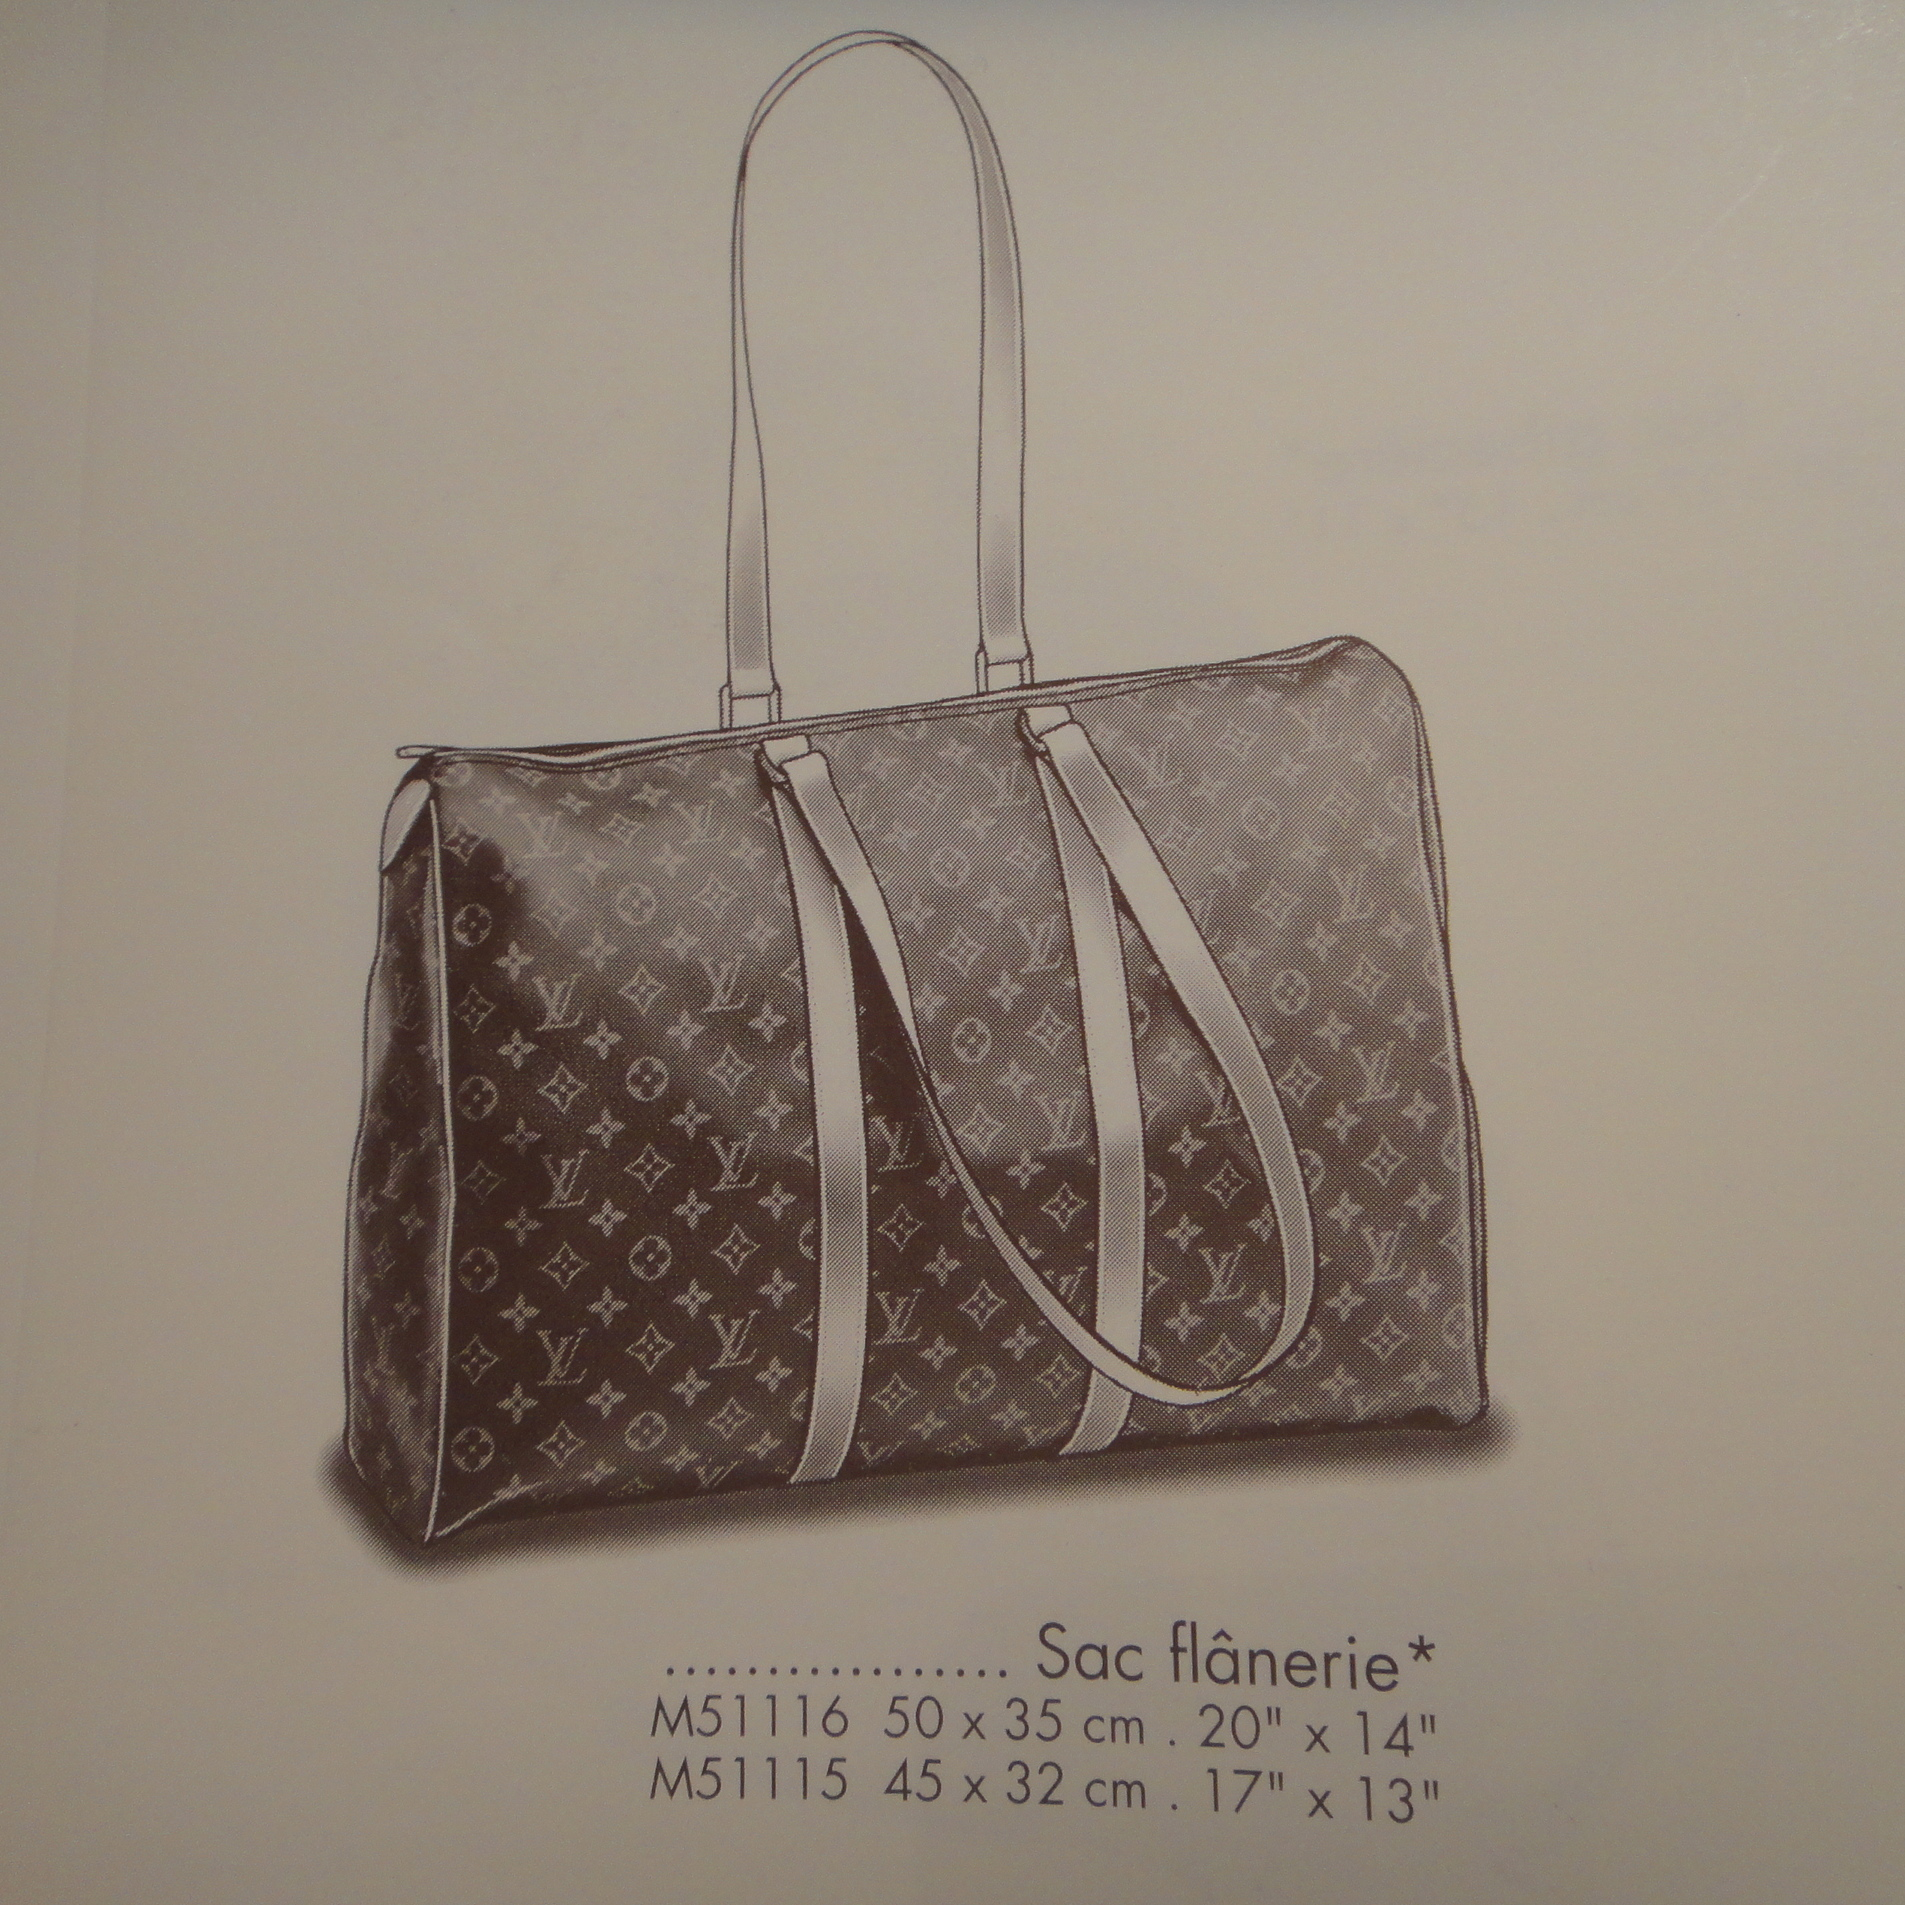 (c) Louis Vuitton, Le Catalogue 1993